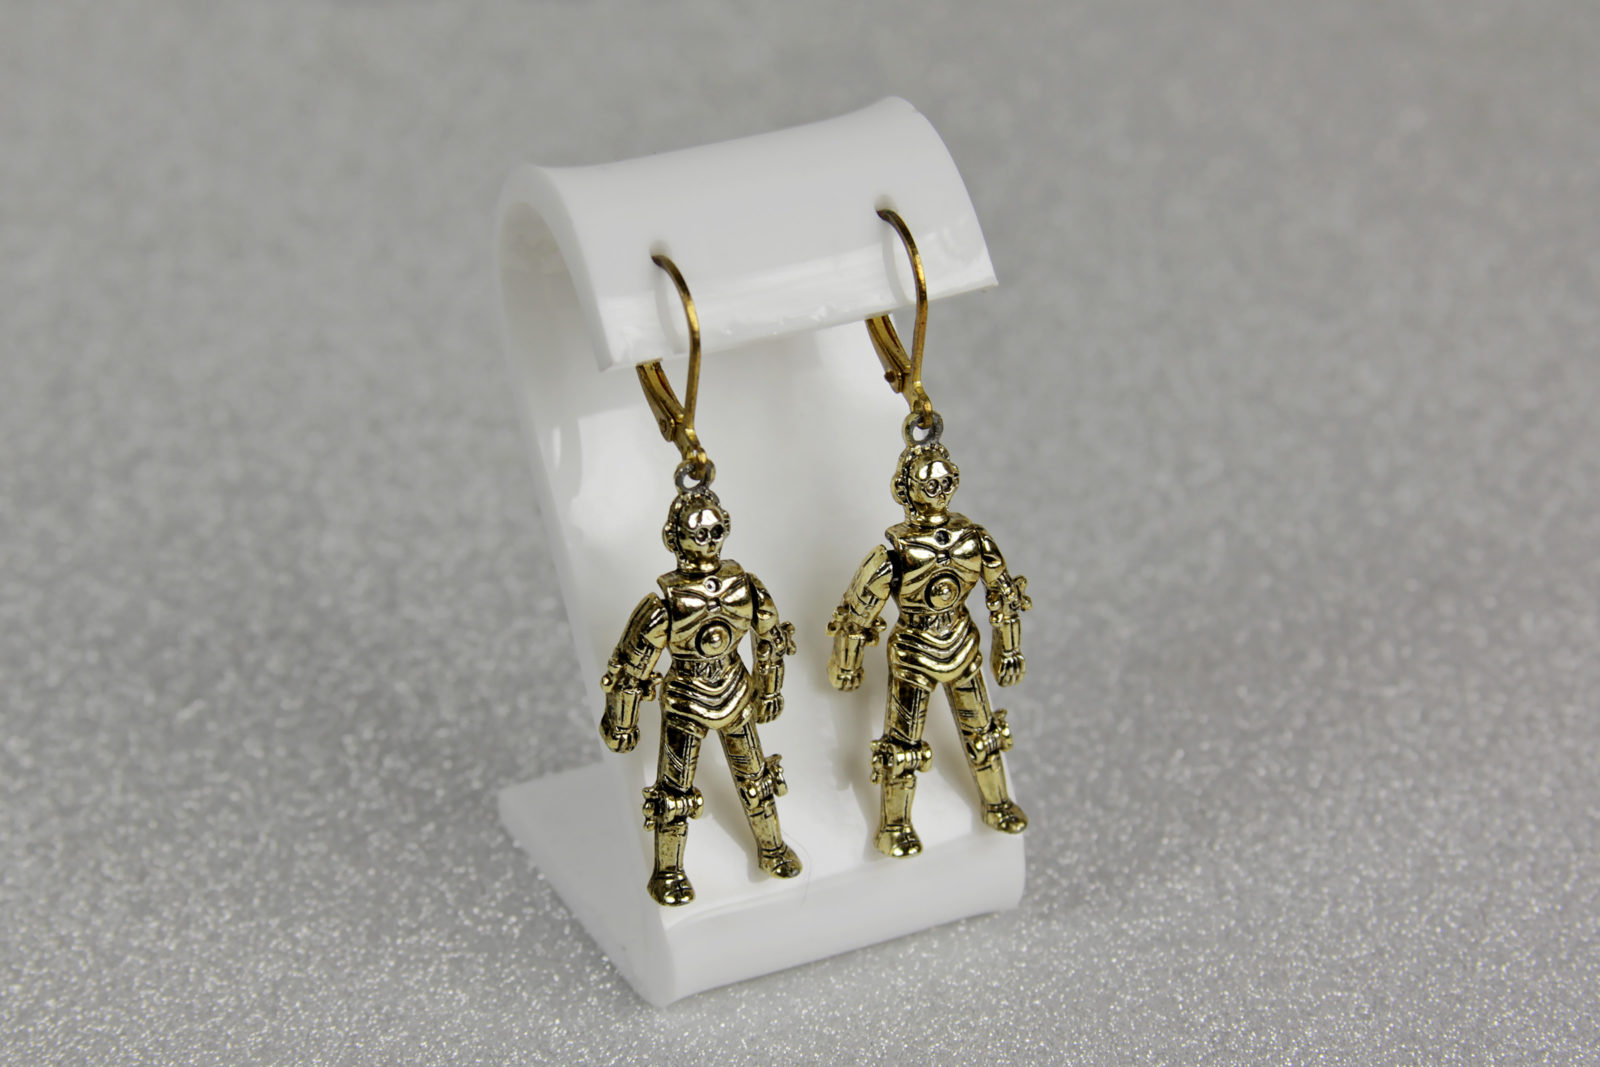 Vintage C-3PO Earrings